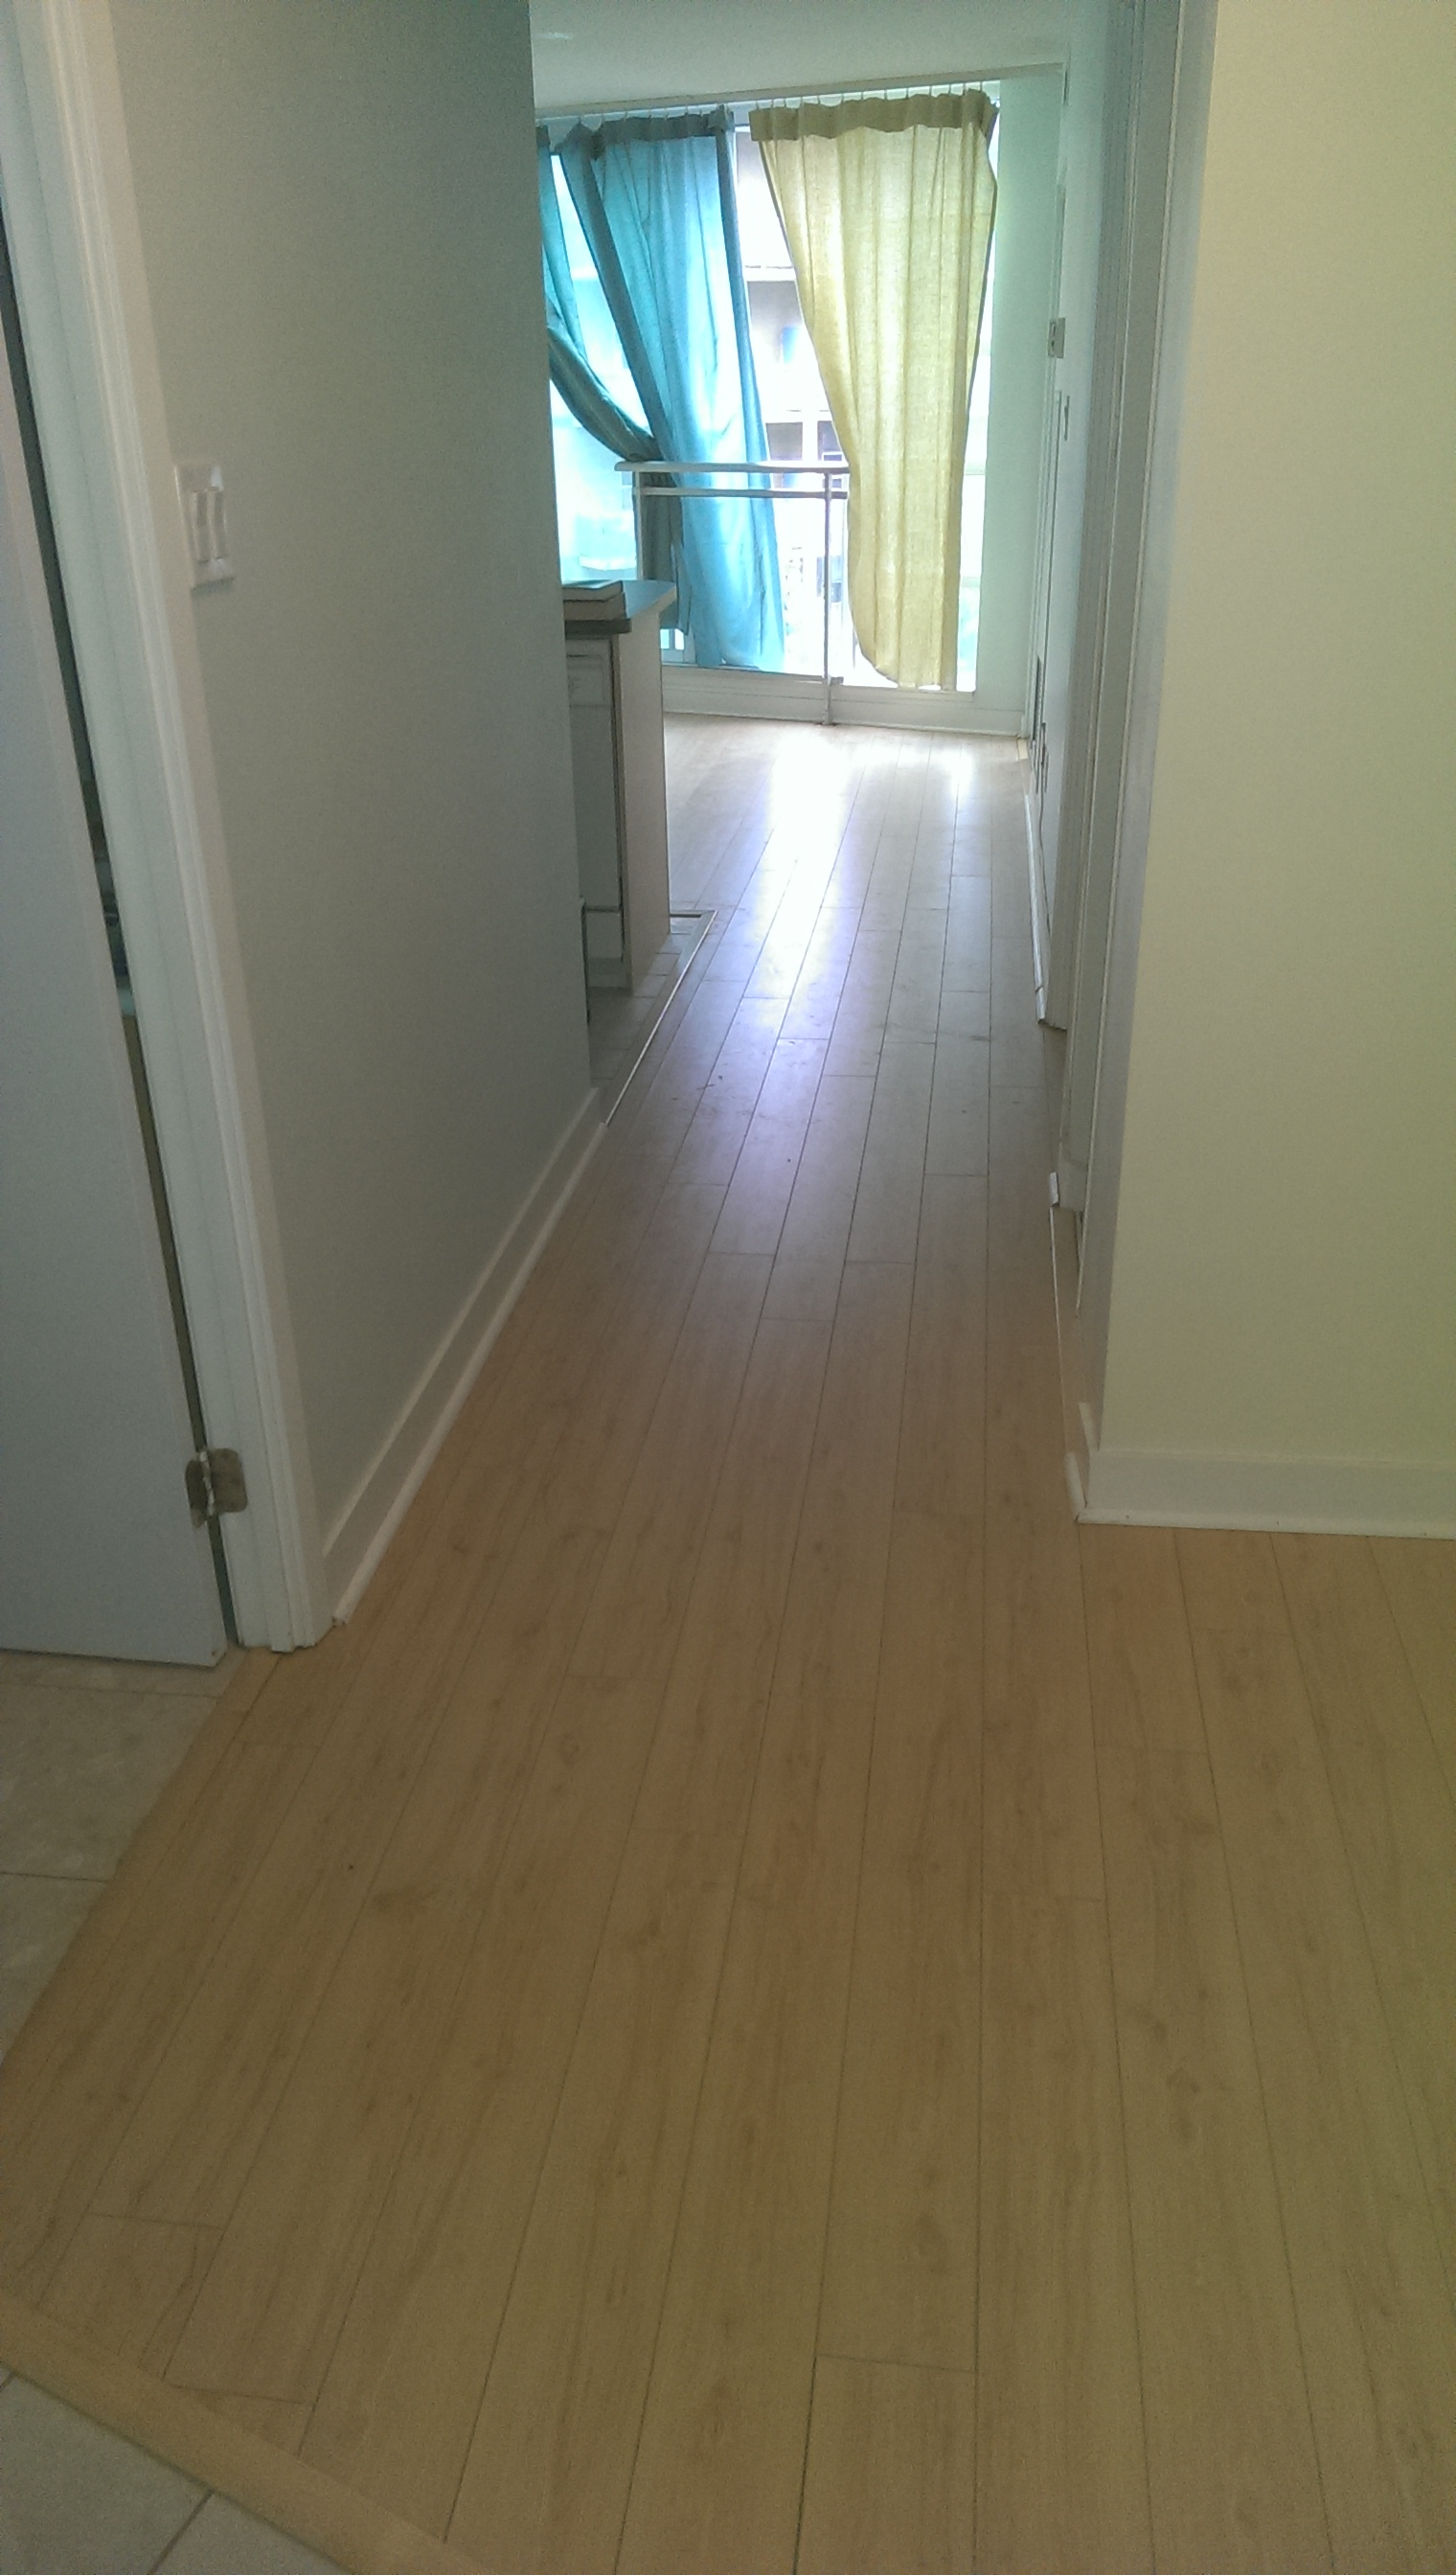 New Hardwood Flooring Makes for Smooth and Safe Hallways